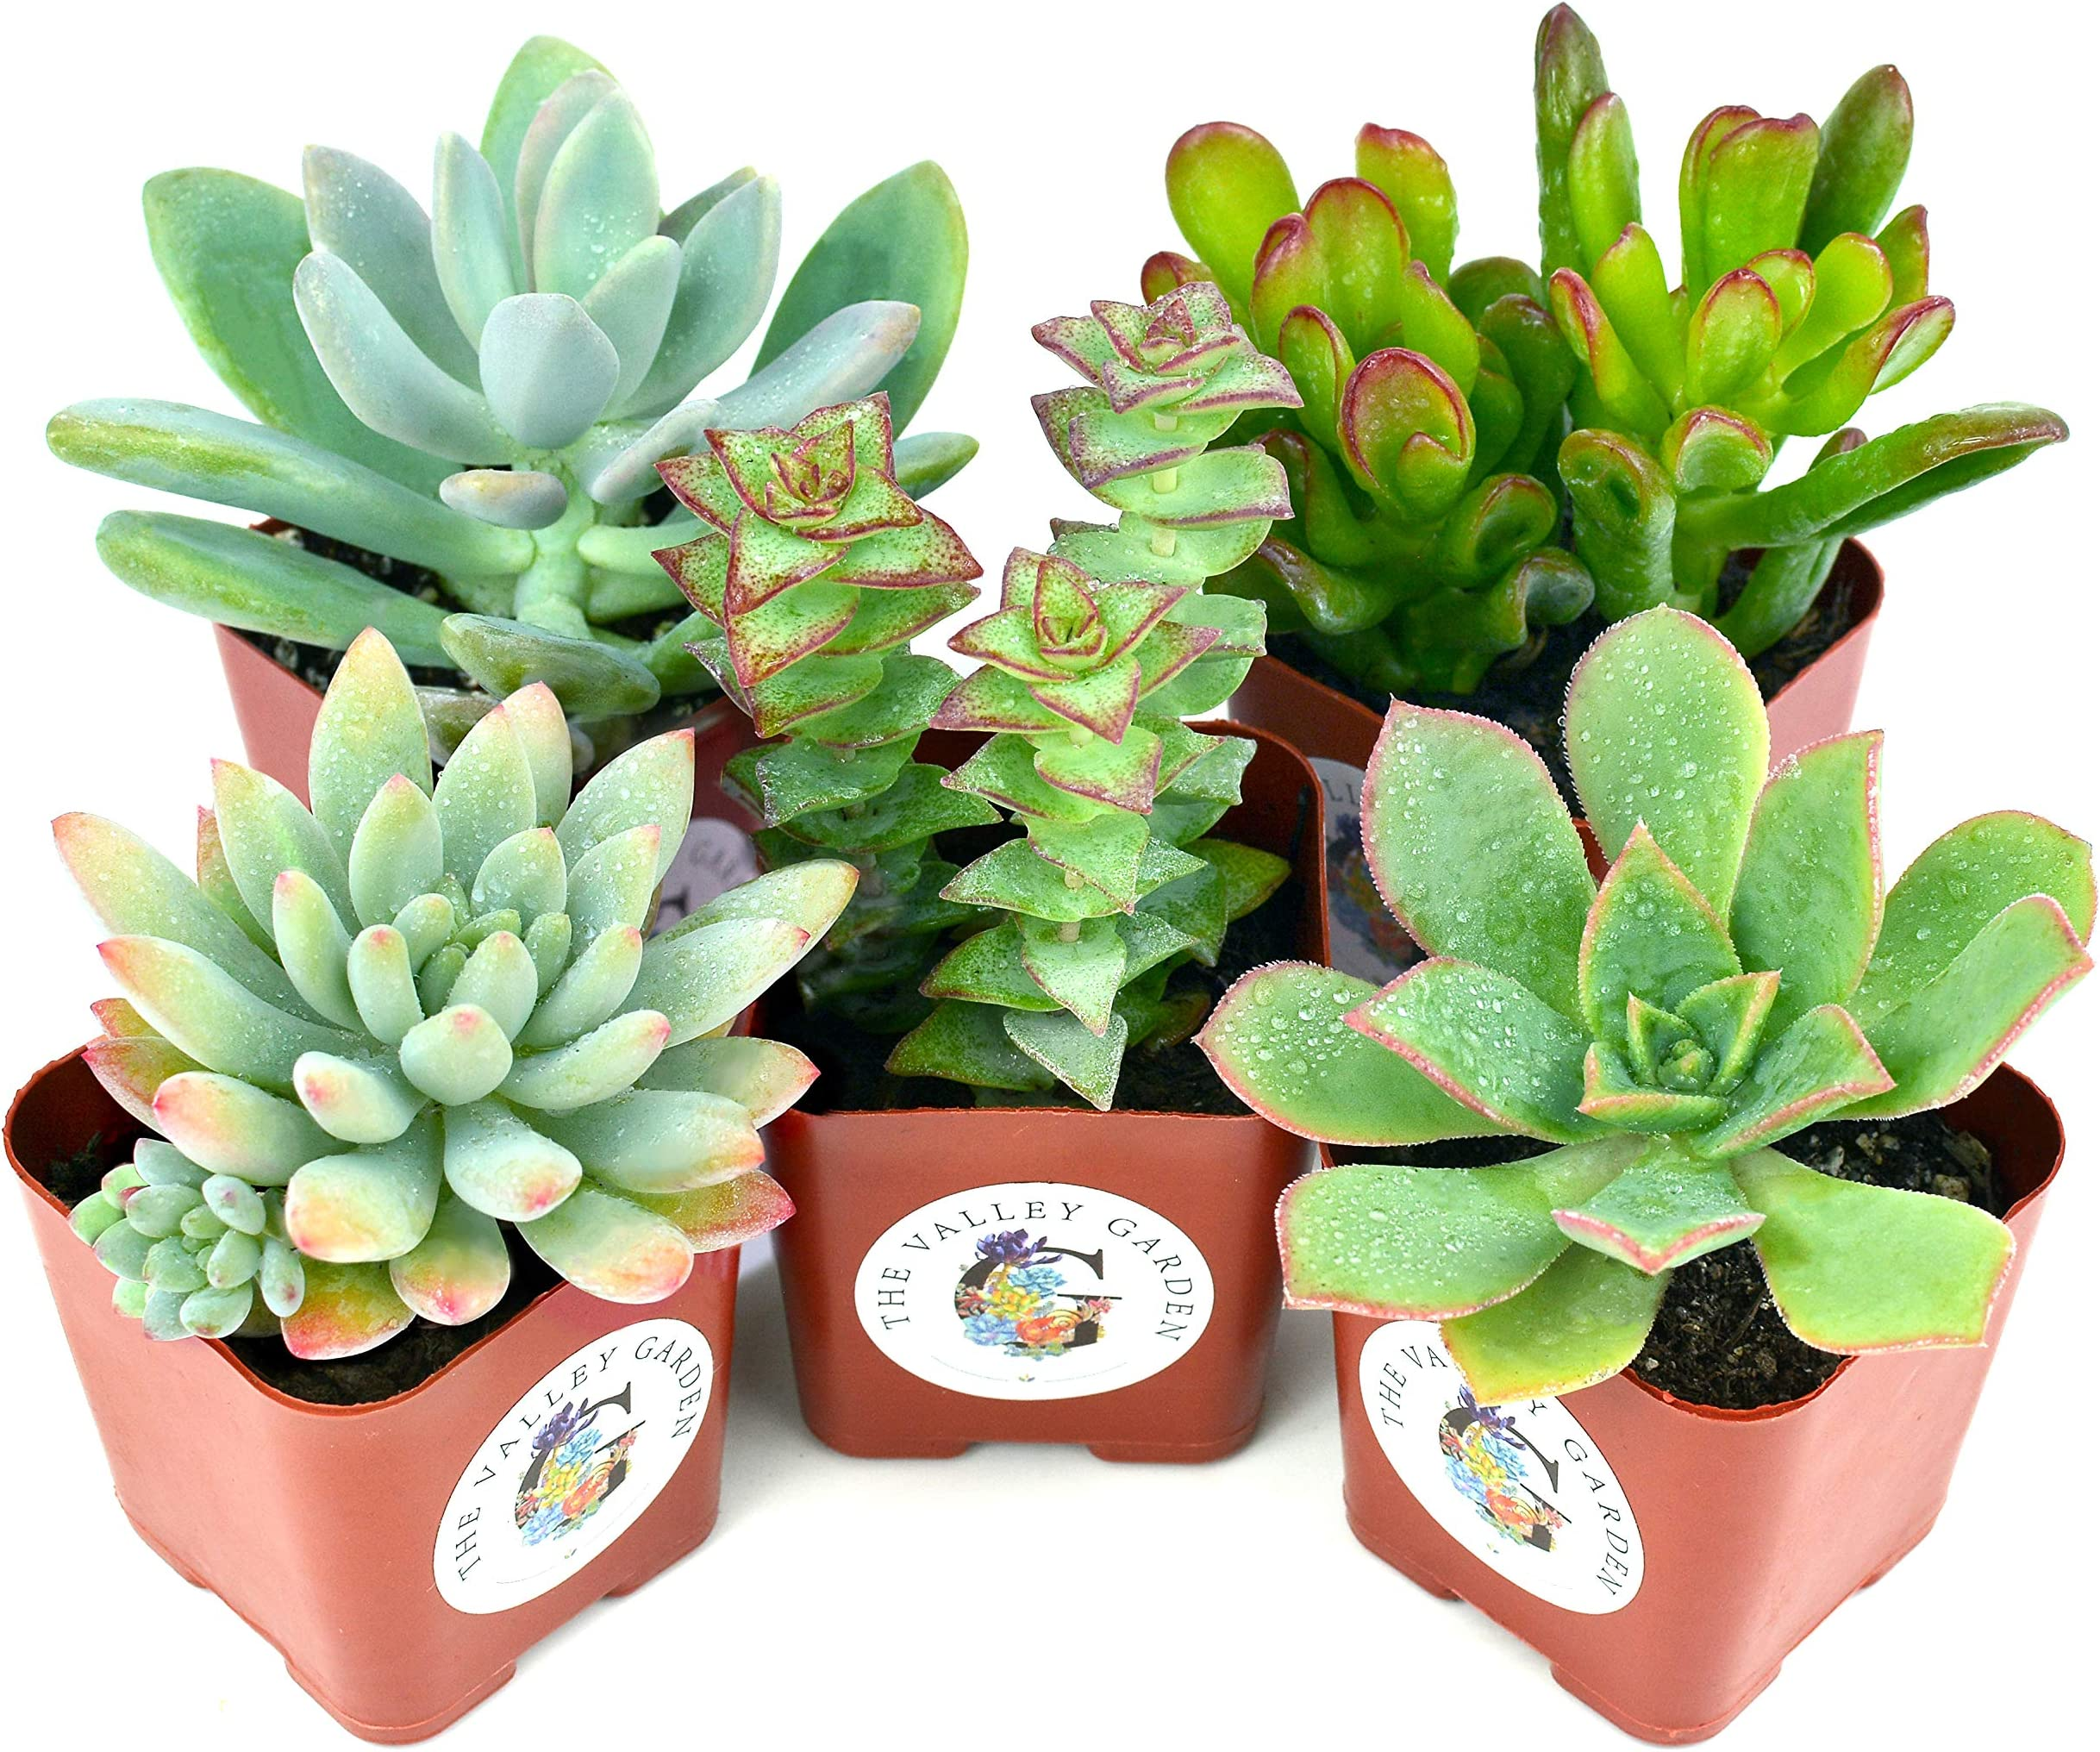 - G2-S 10 pieces per pack Made of air dry clay and wire stems Random Mini Succulents Assorted